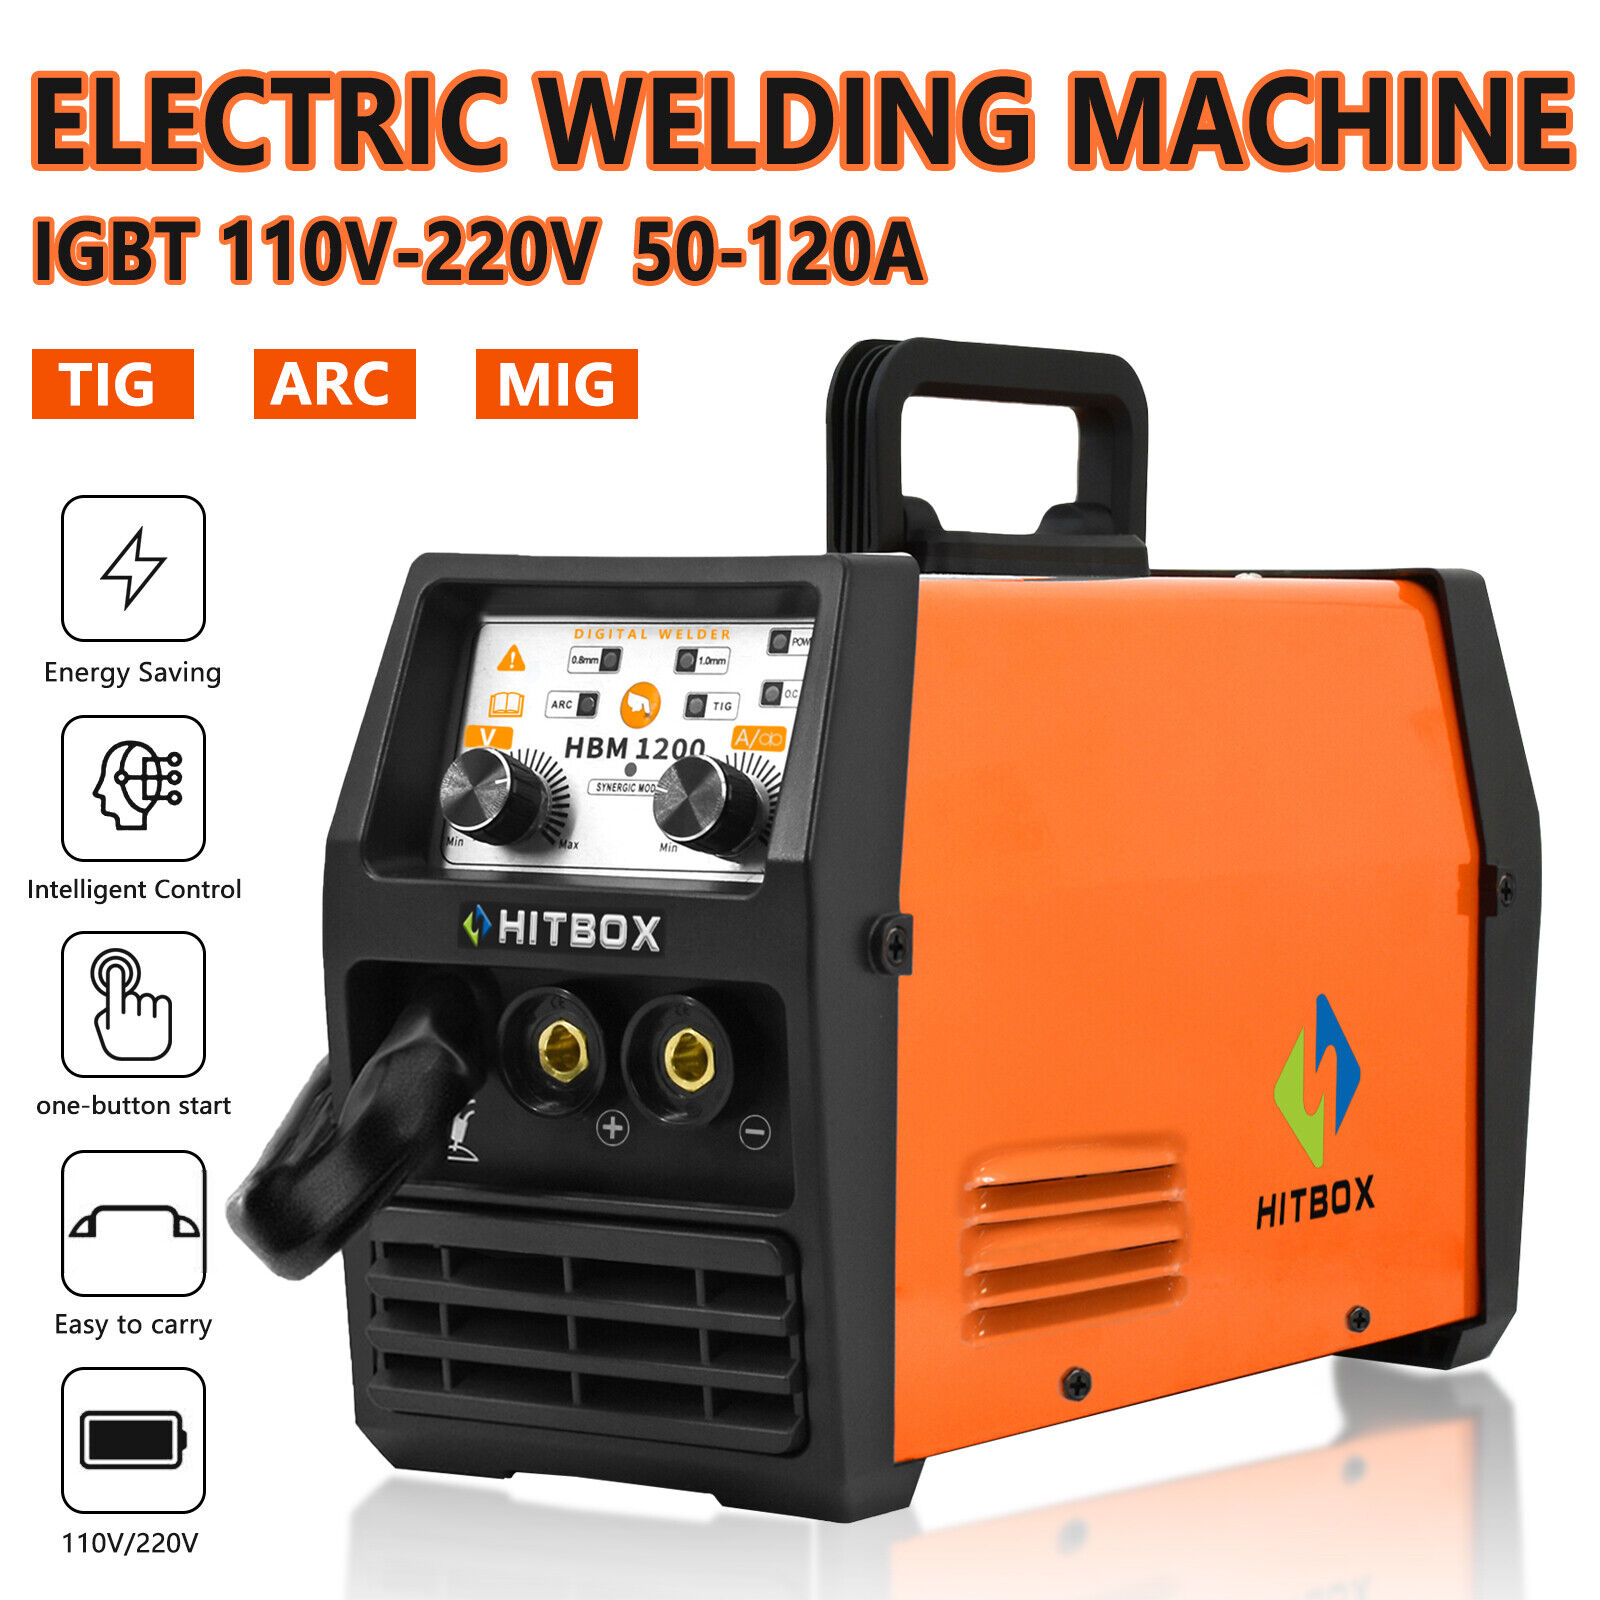 HITBOX 110V/220V MIG Welder MMA Lift TIG ARC 3in1 Wire Welding Machine Gasless. Available Now for 179.99